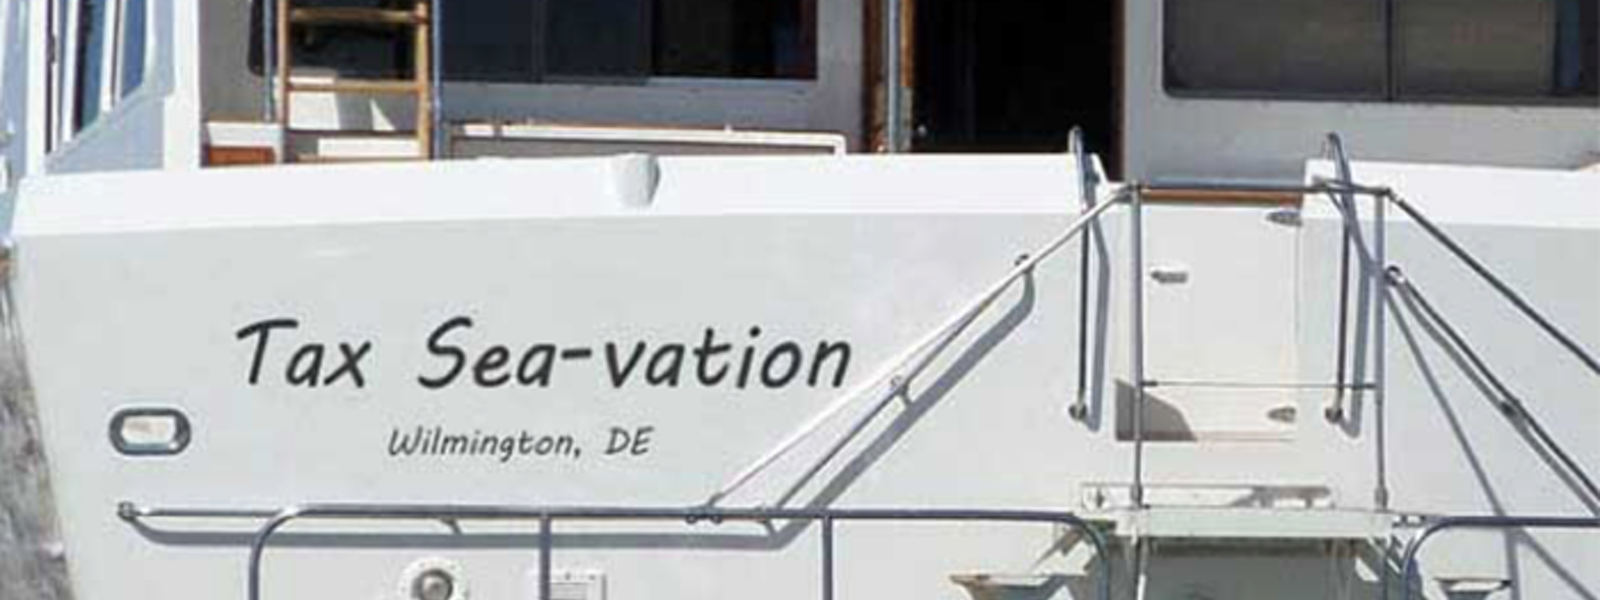 15 of the Most Hilarious Boat Names